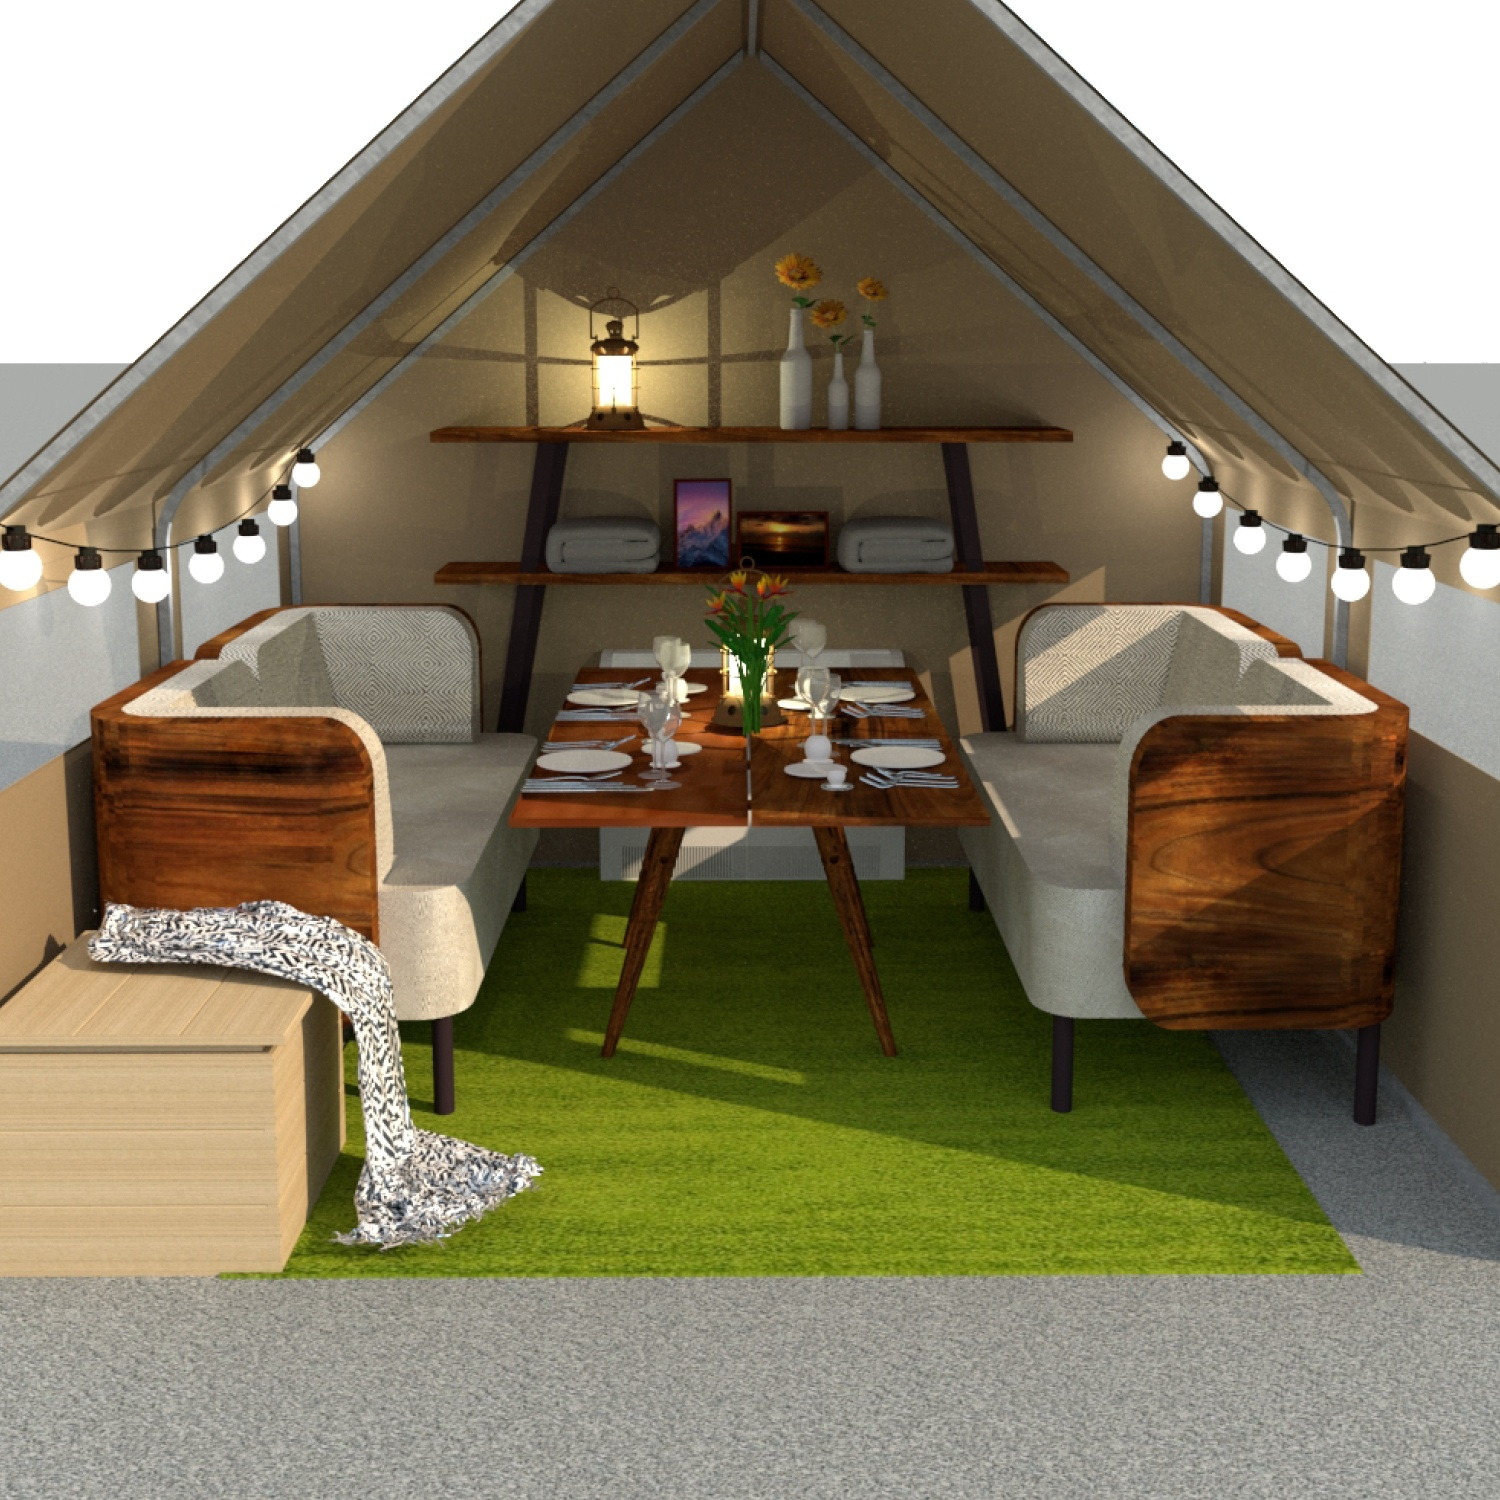 Wall Tent for dining